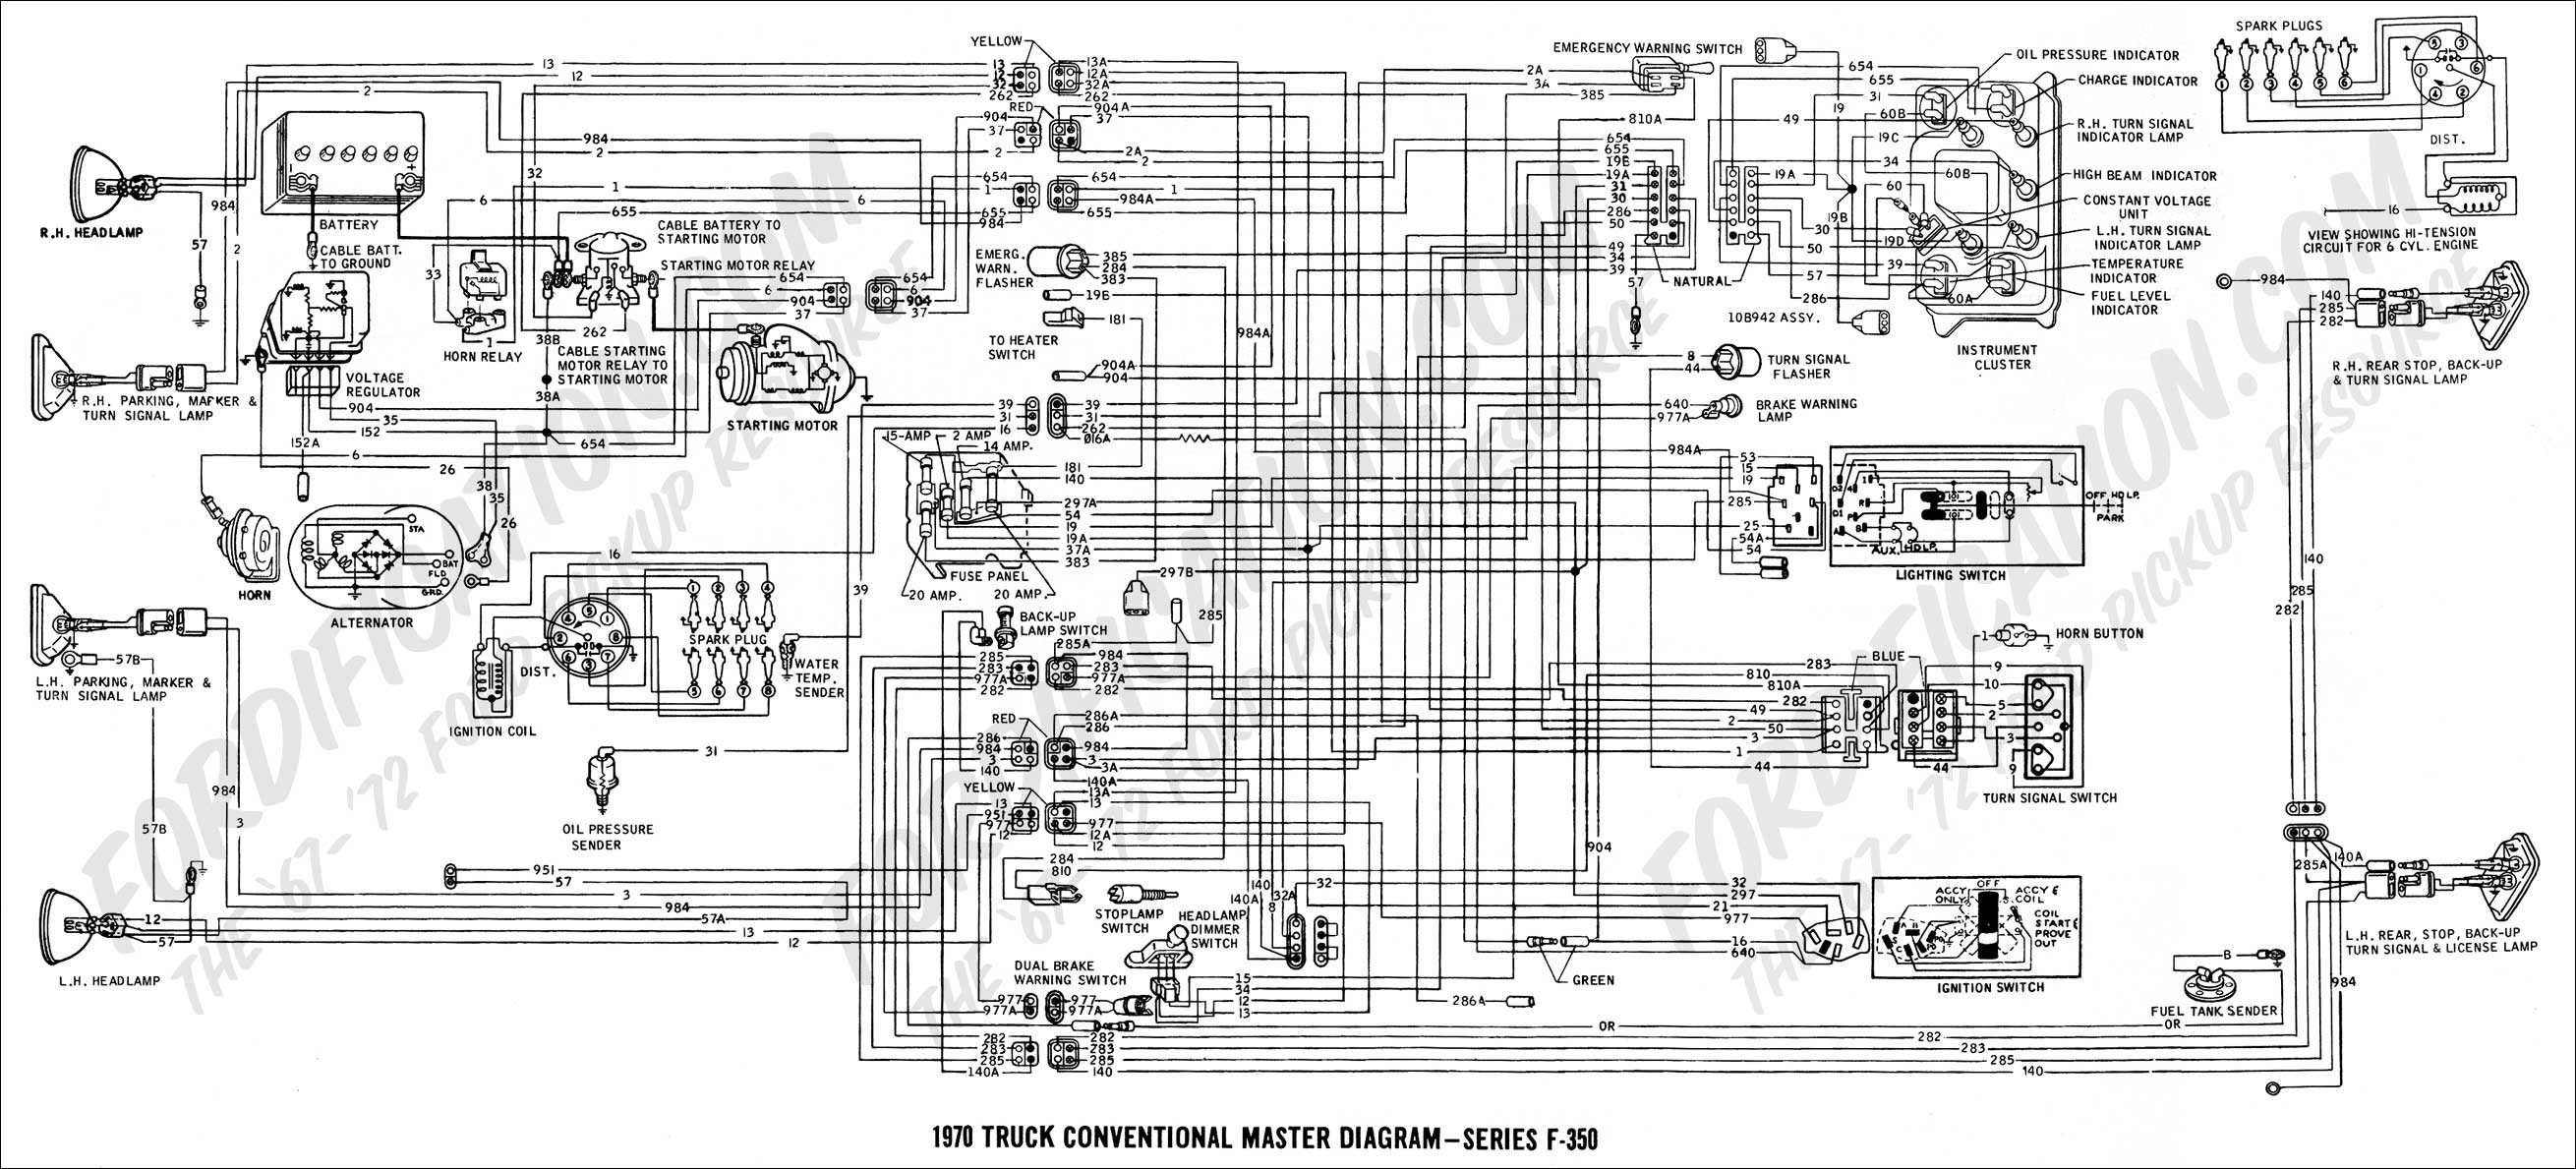 2004 Pat Fuse Diagram - DIY Enthusiasts Wiring Diagrams • Vw Golf Fuse Box on vw golf headlight switch, vw golf fender, vw golf tire, vw golf a pillar, vw golf emergency brake, vw golf glove box, vw golf ac relay, vw golf distributor, vw golf intake manifold, vw thing fuse box, vw golf ignition switch, vw golf vacuum diagram, vw eos fuse box, vw beetle turbo s fuse box, vw golf wire harness, vw golf instrument cluster, vw touareg fuse box, vw golf steering pump, vw golf oil cooler, vw super beetle fuse box,